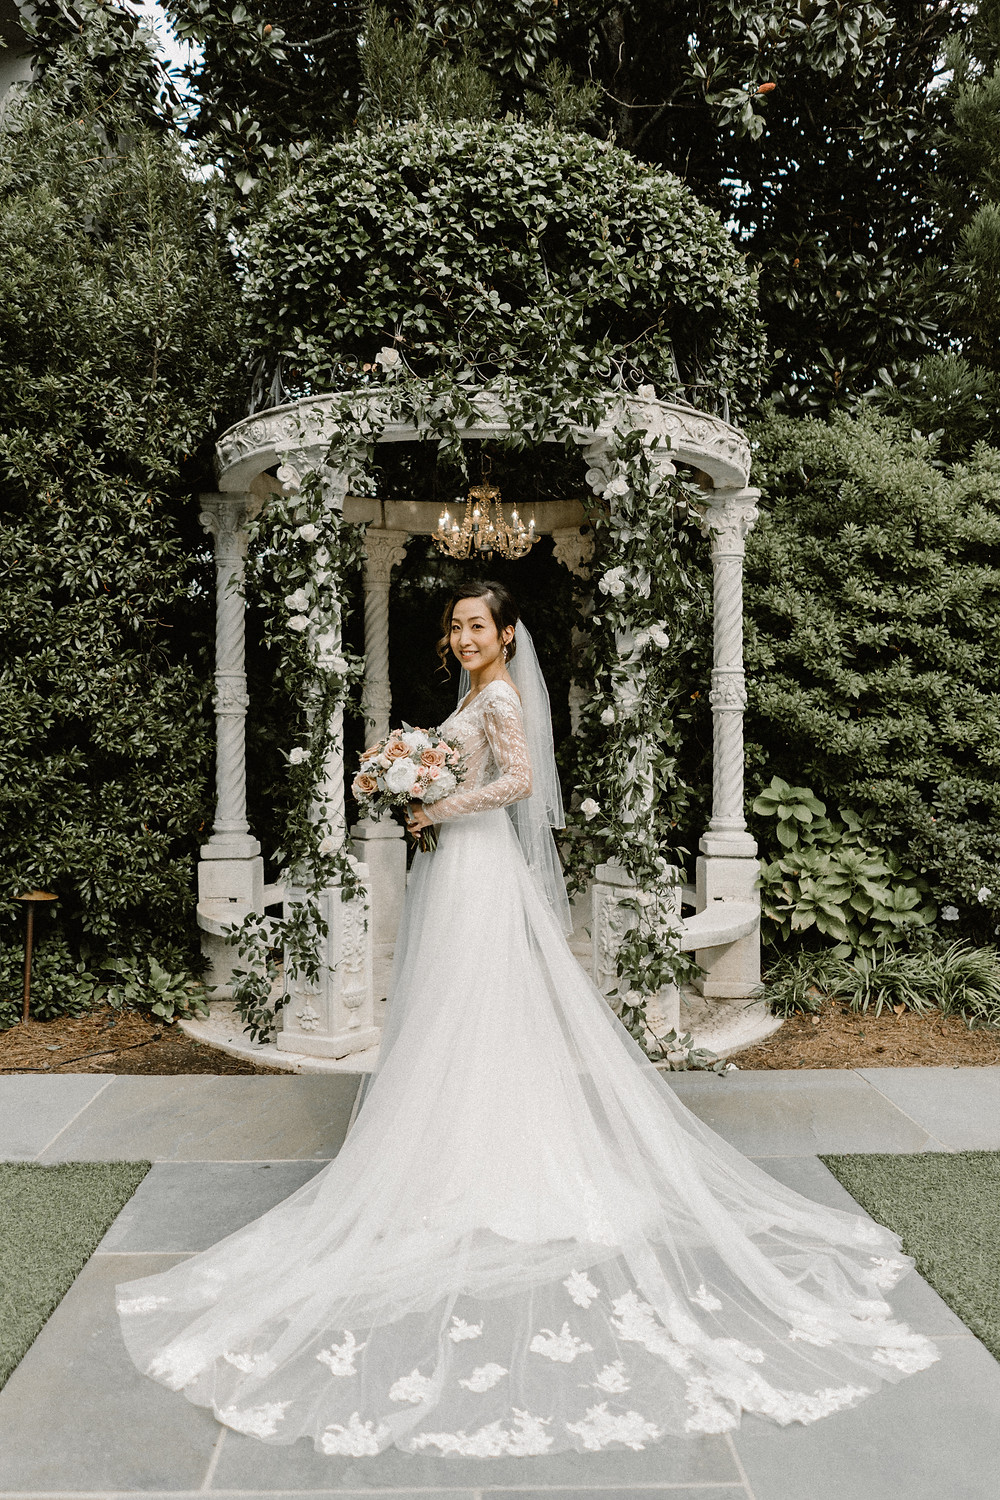 Asian Bride wearing a long sleeved tulle wedding dress in a garden